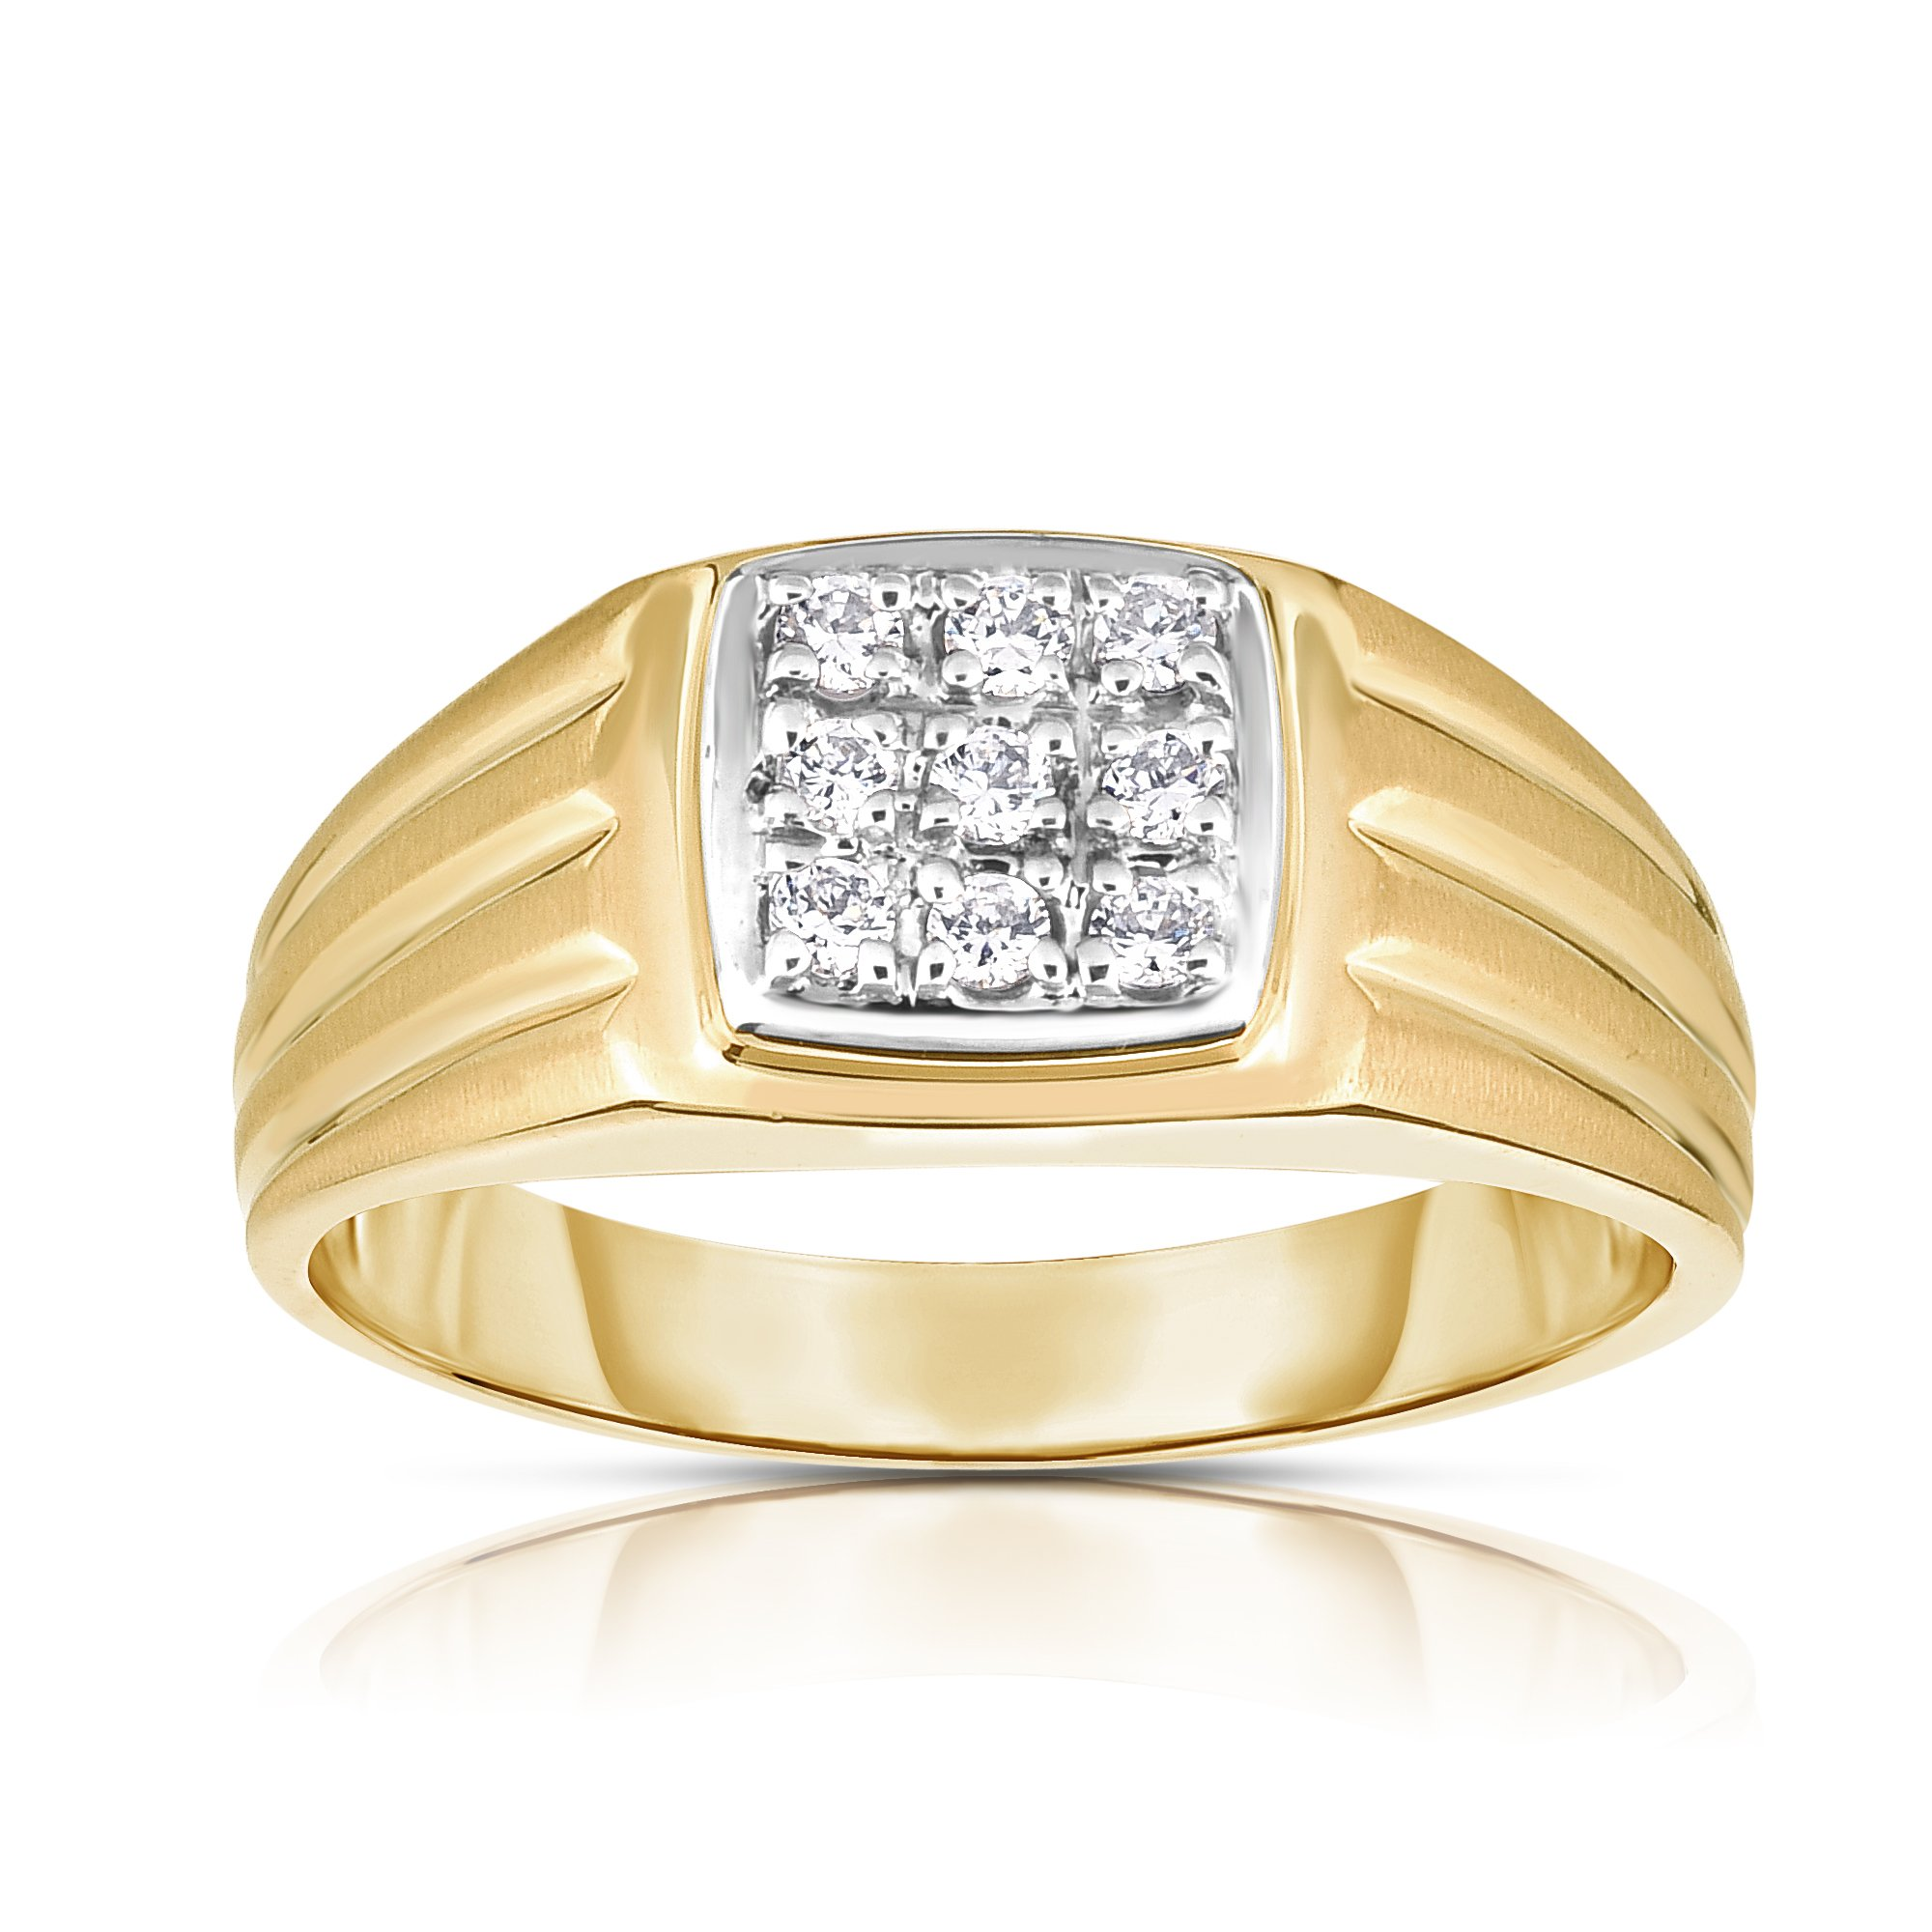 Noray Designs 14K Yellow Gold Diamond (0.22 Ct, I1-I2 Clarity, G-H Color) Men's 9-Stone Ring